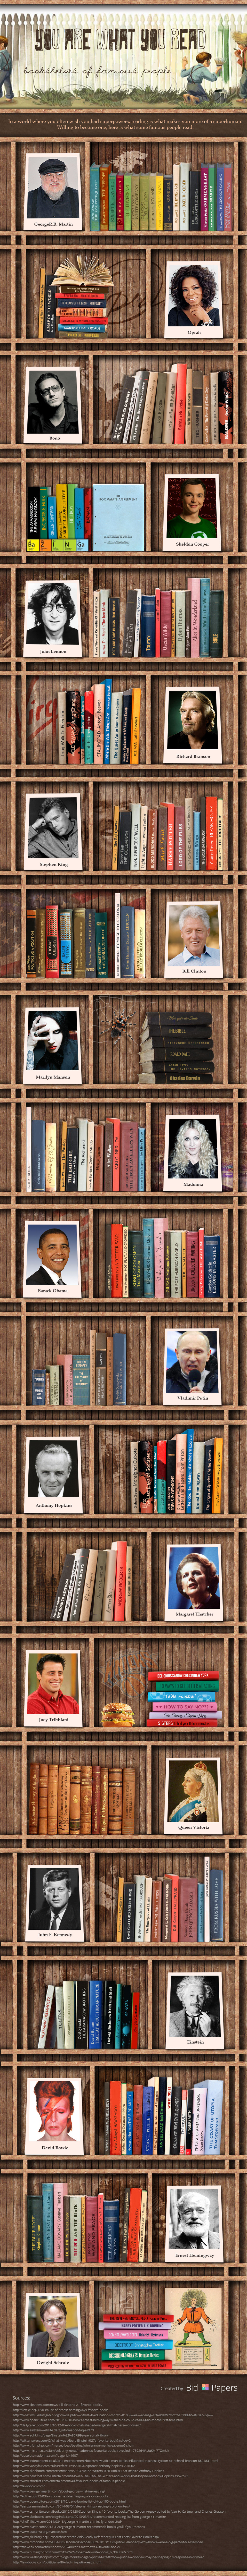 You are what you read -- bookshelves of famous people